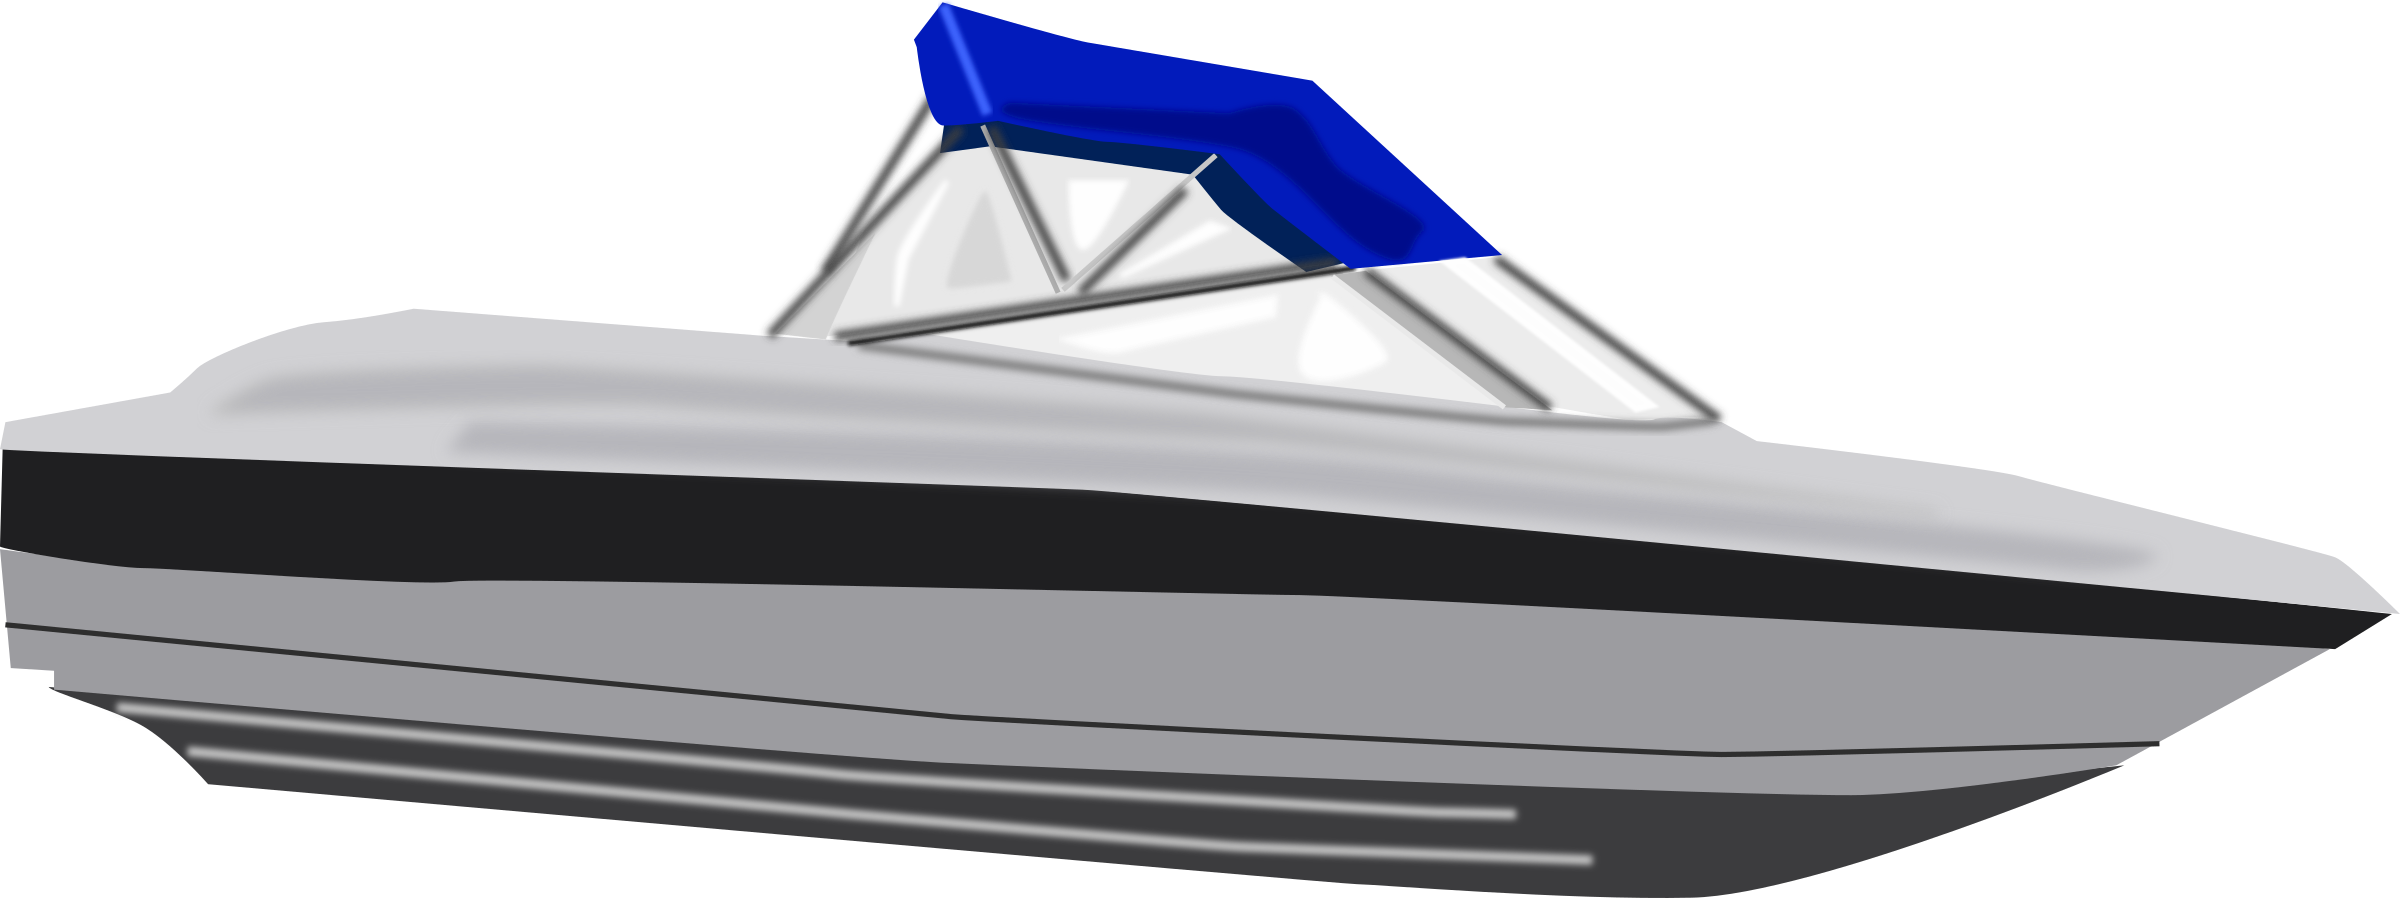 Speed Boat Clipart.